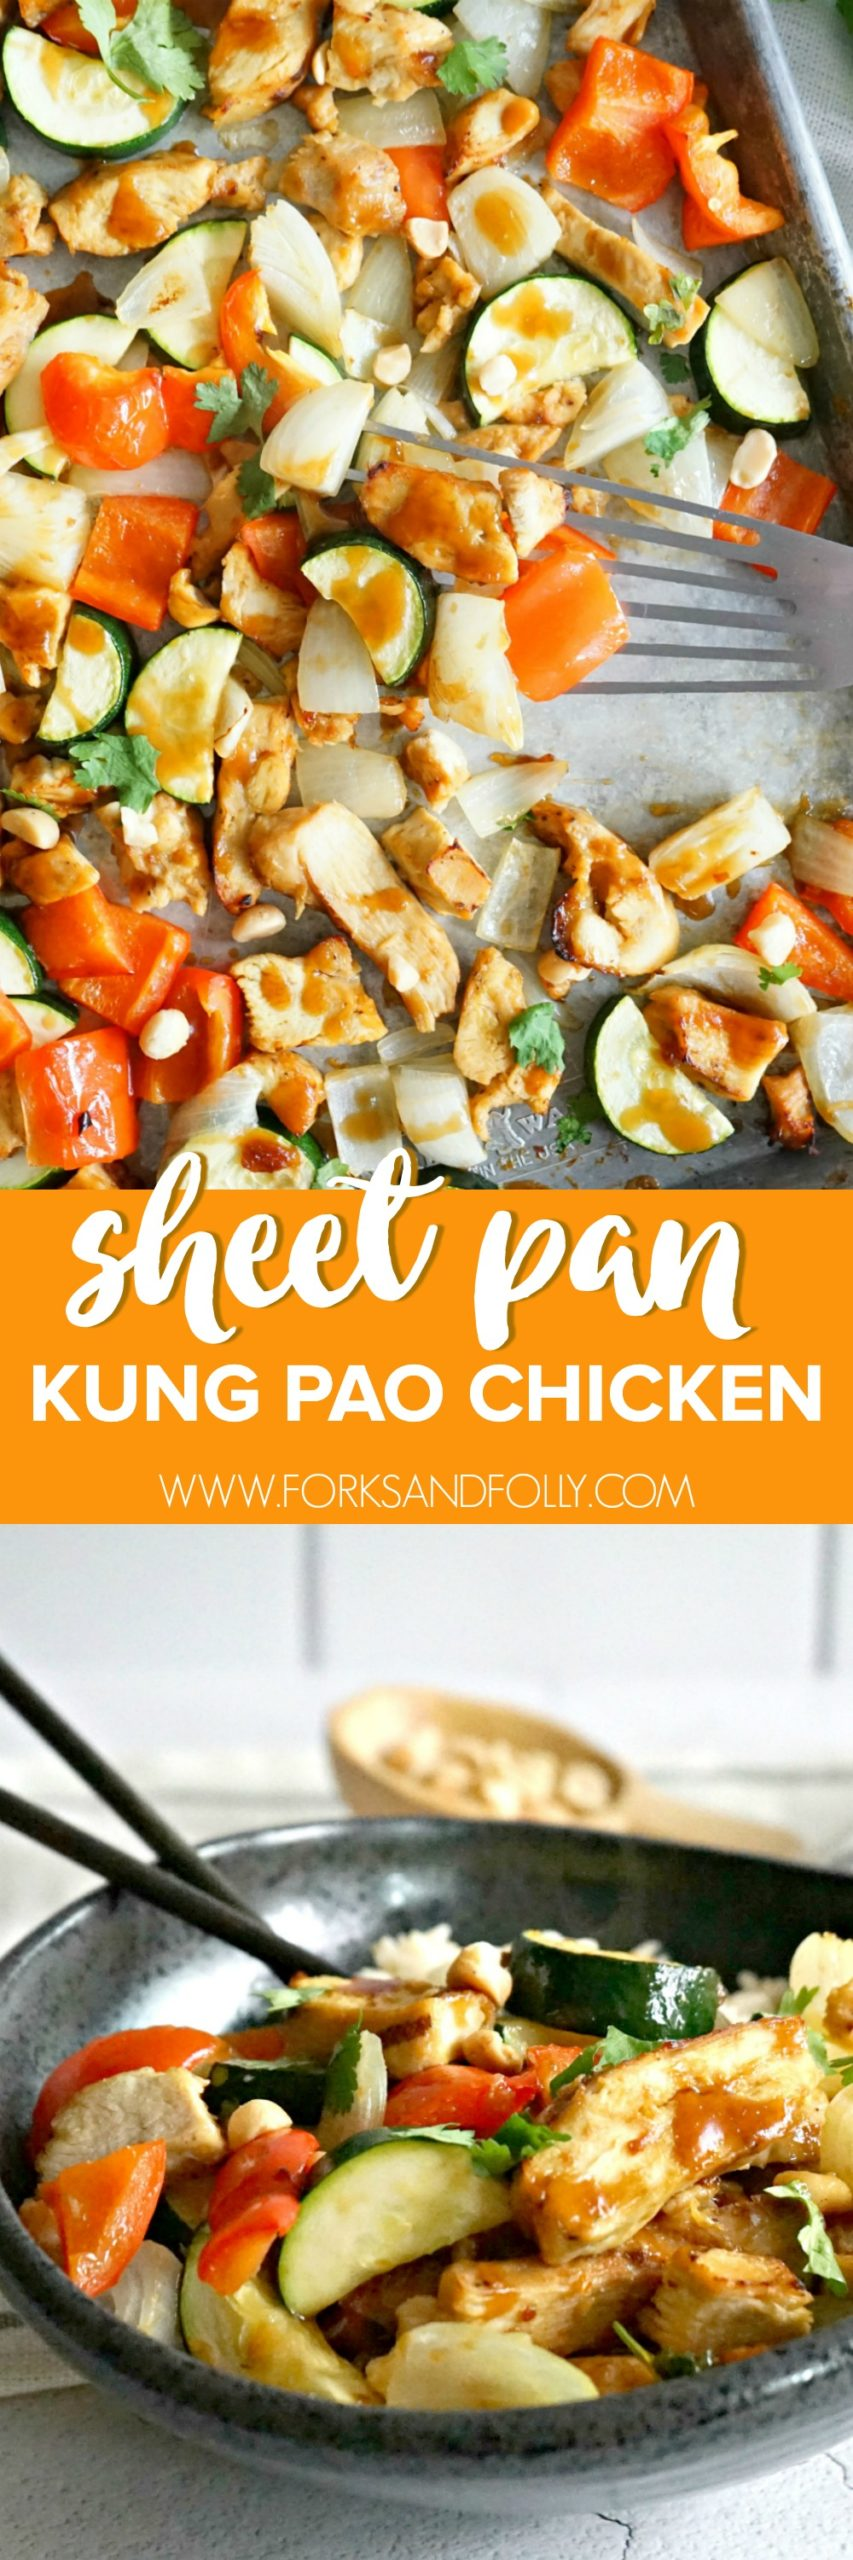 When life gives me lemons, I make Easy Sheet Pan Kung Pao Chicken.  With pantry staples and a single sheet pan dinner is ready in just 30 minutes!  Take that Monday.